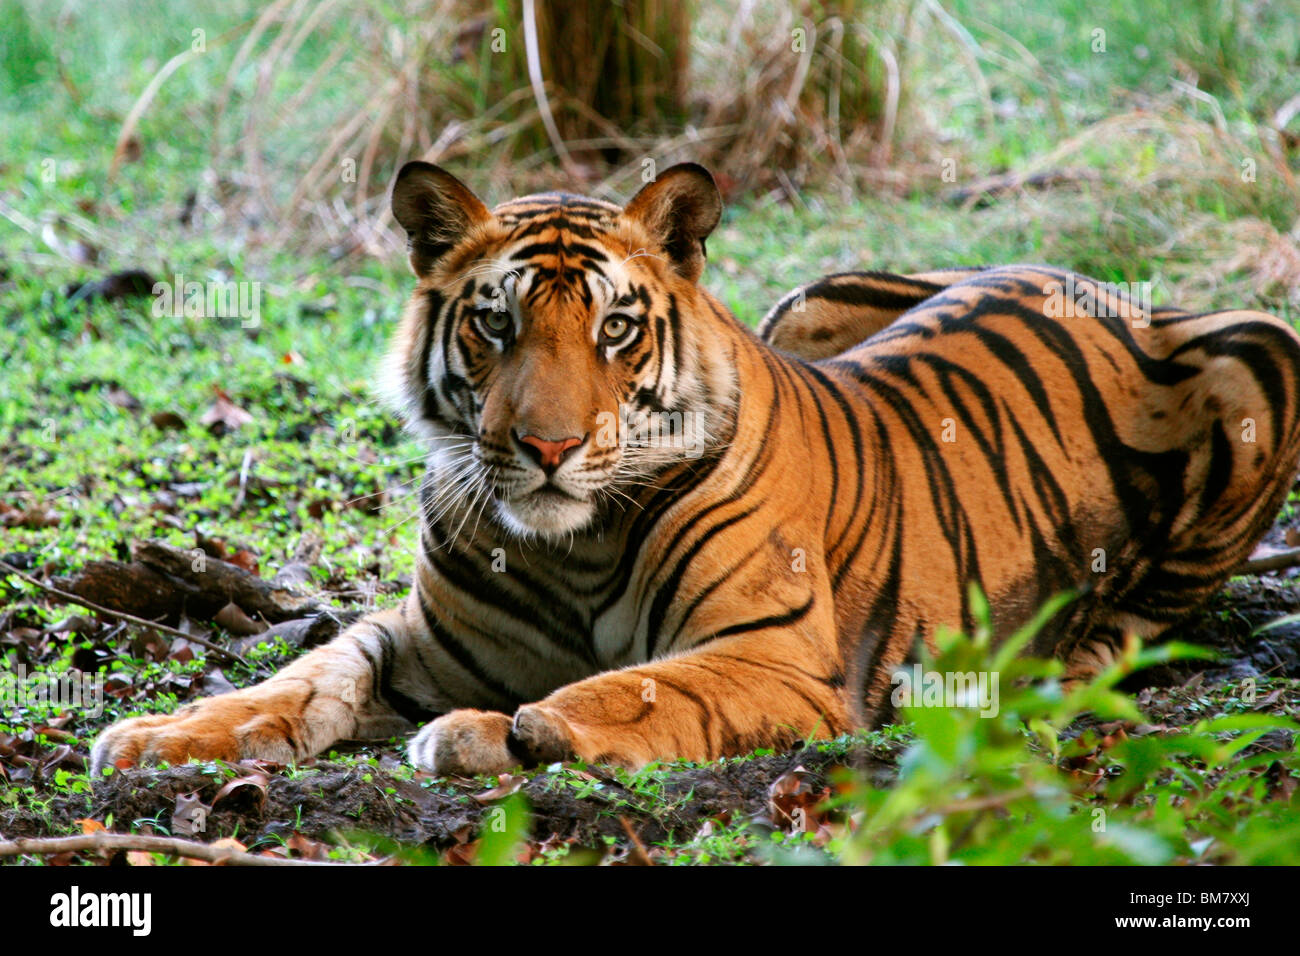 The Royal Bengal Tiger (Panthera tigris tigris), Bandhavgarh National Park, Madhya Pradesh, India, Asia Stock Photo